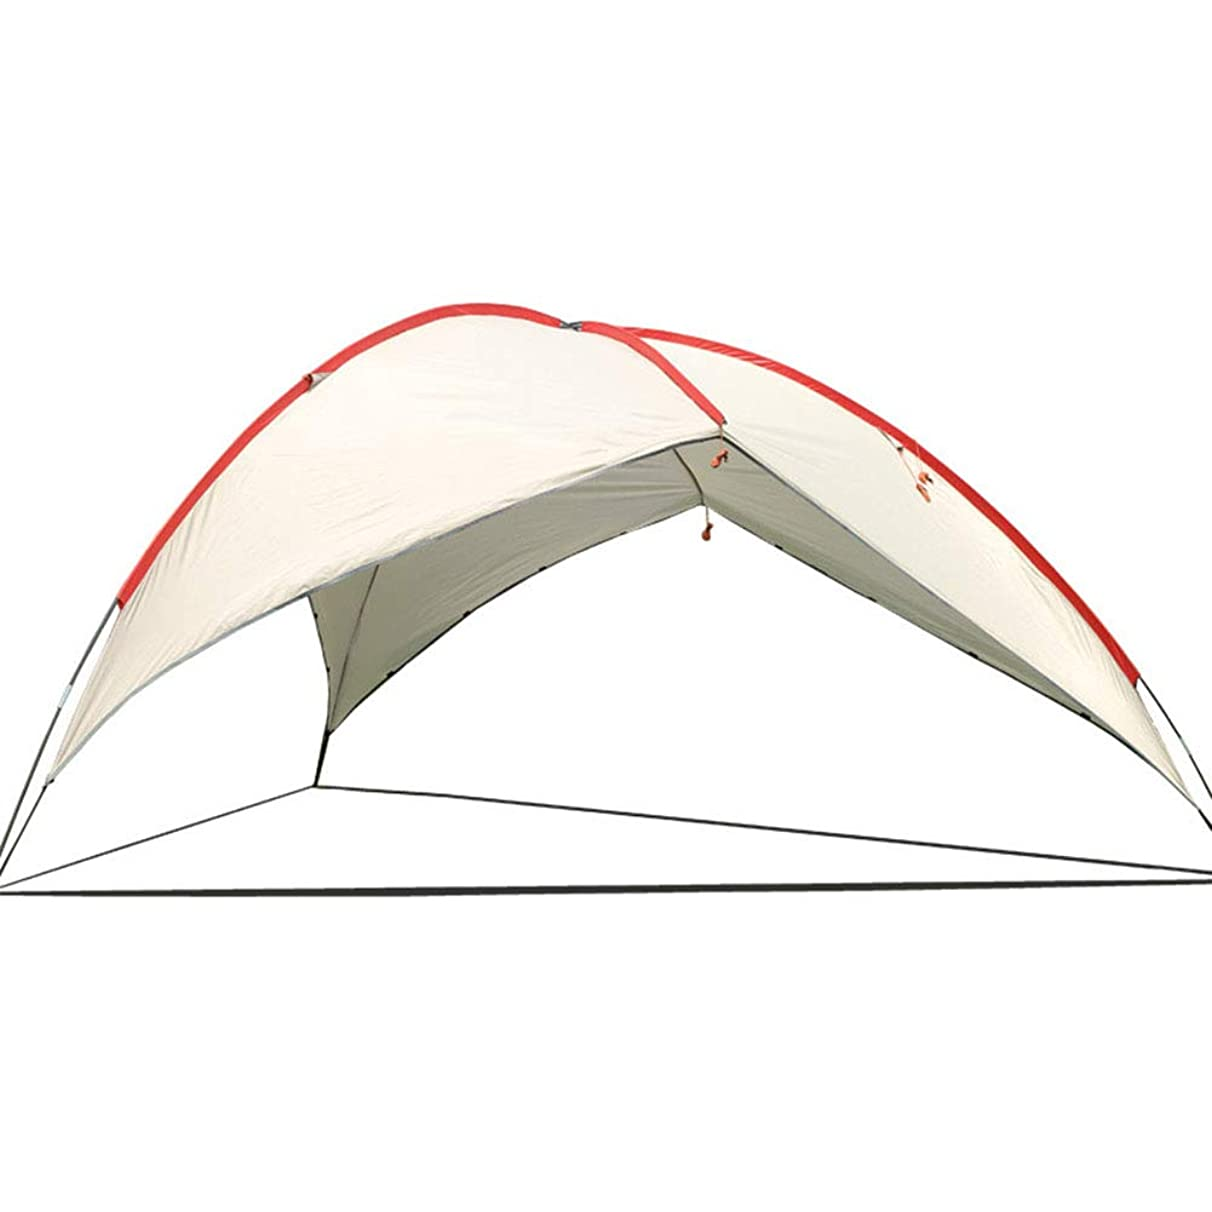 WE&ZHE Outdoor Multi-Person Tent Shade Canopy, Beach Canopy Barbecue Shed Triangle Canopy, Slant Leg Instant Canopy with Wall Panel and Backpack,B